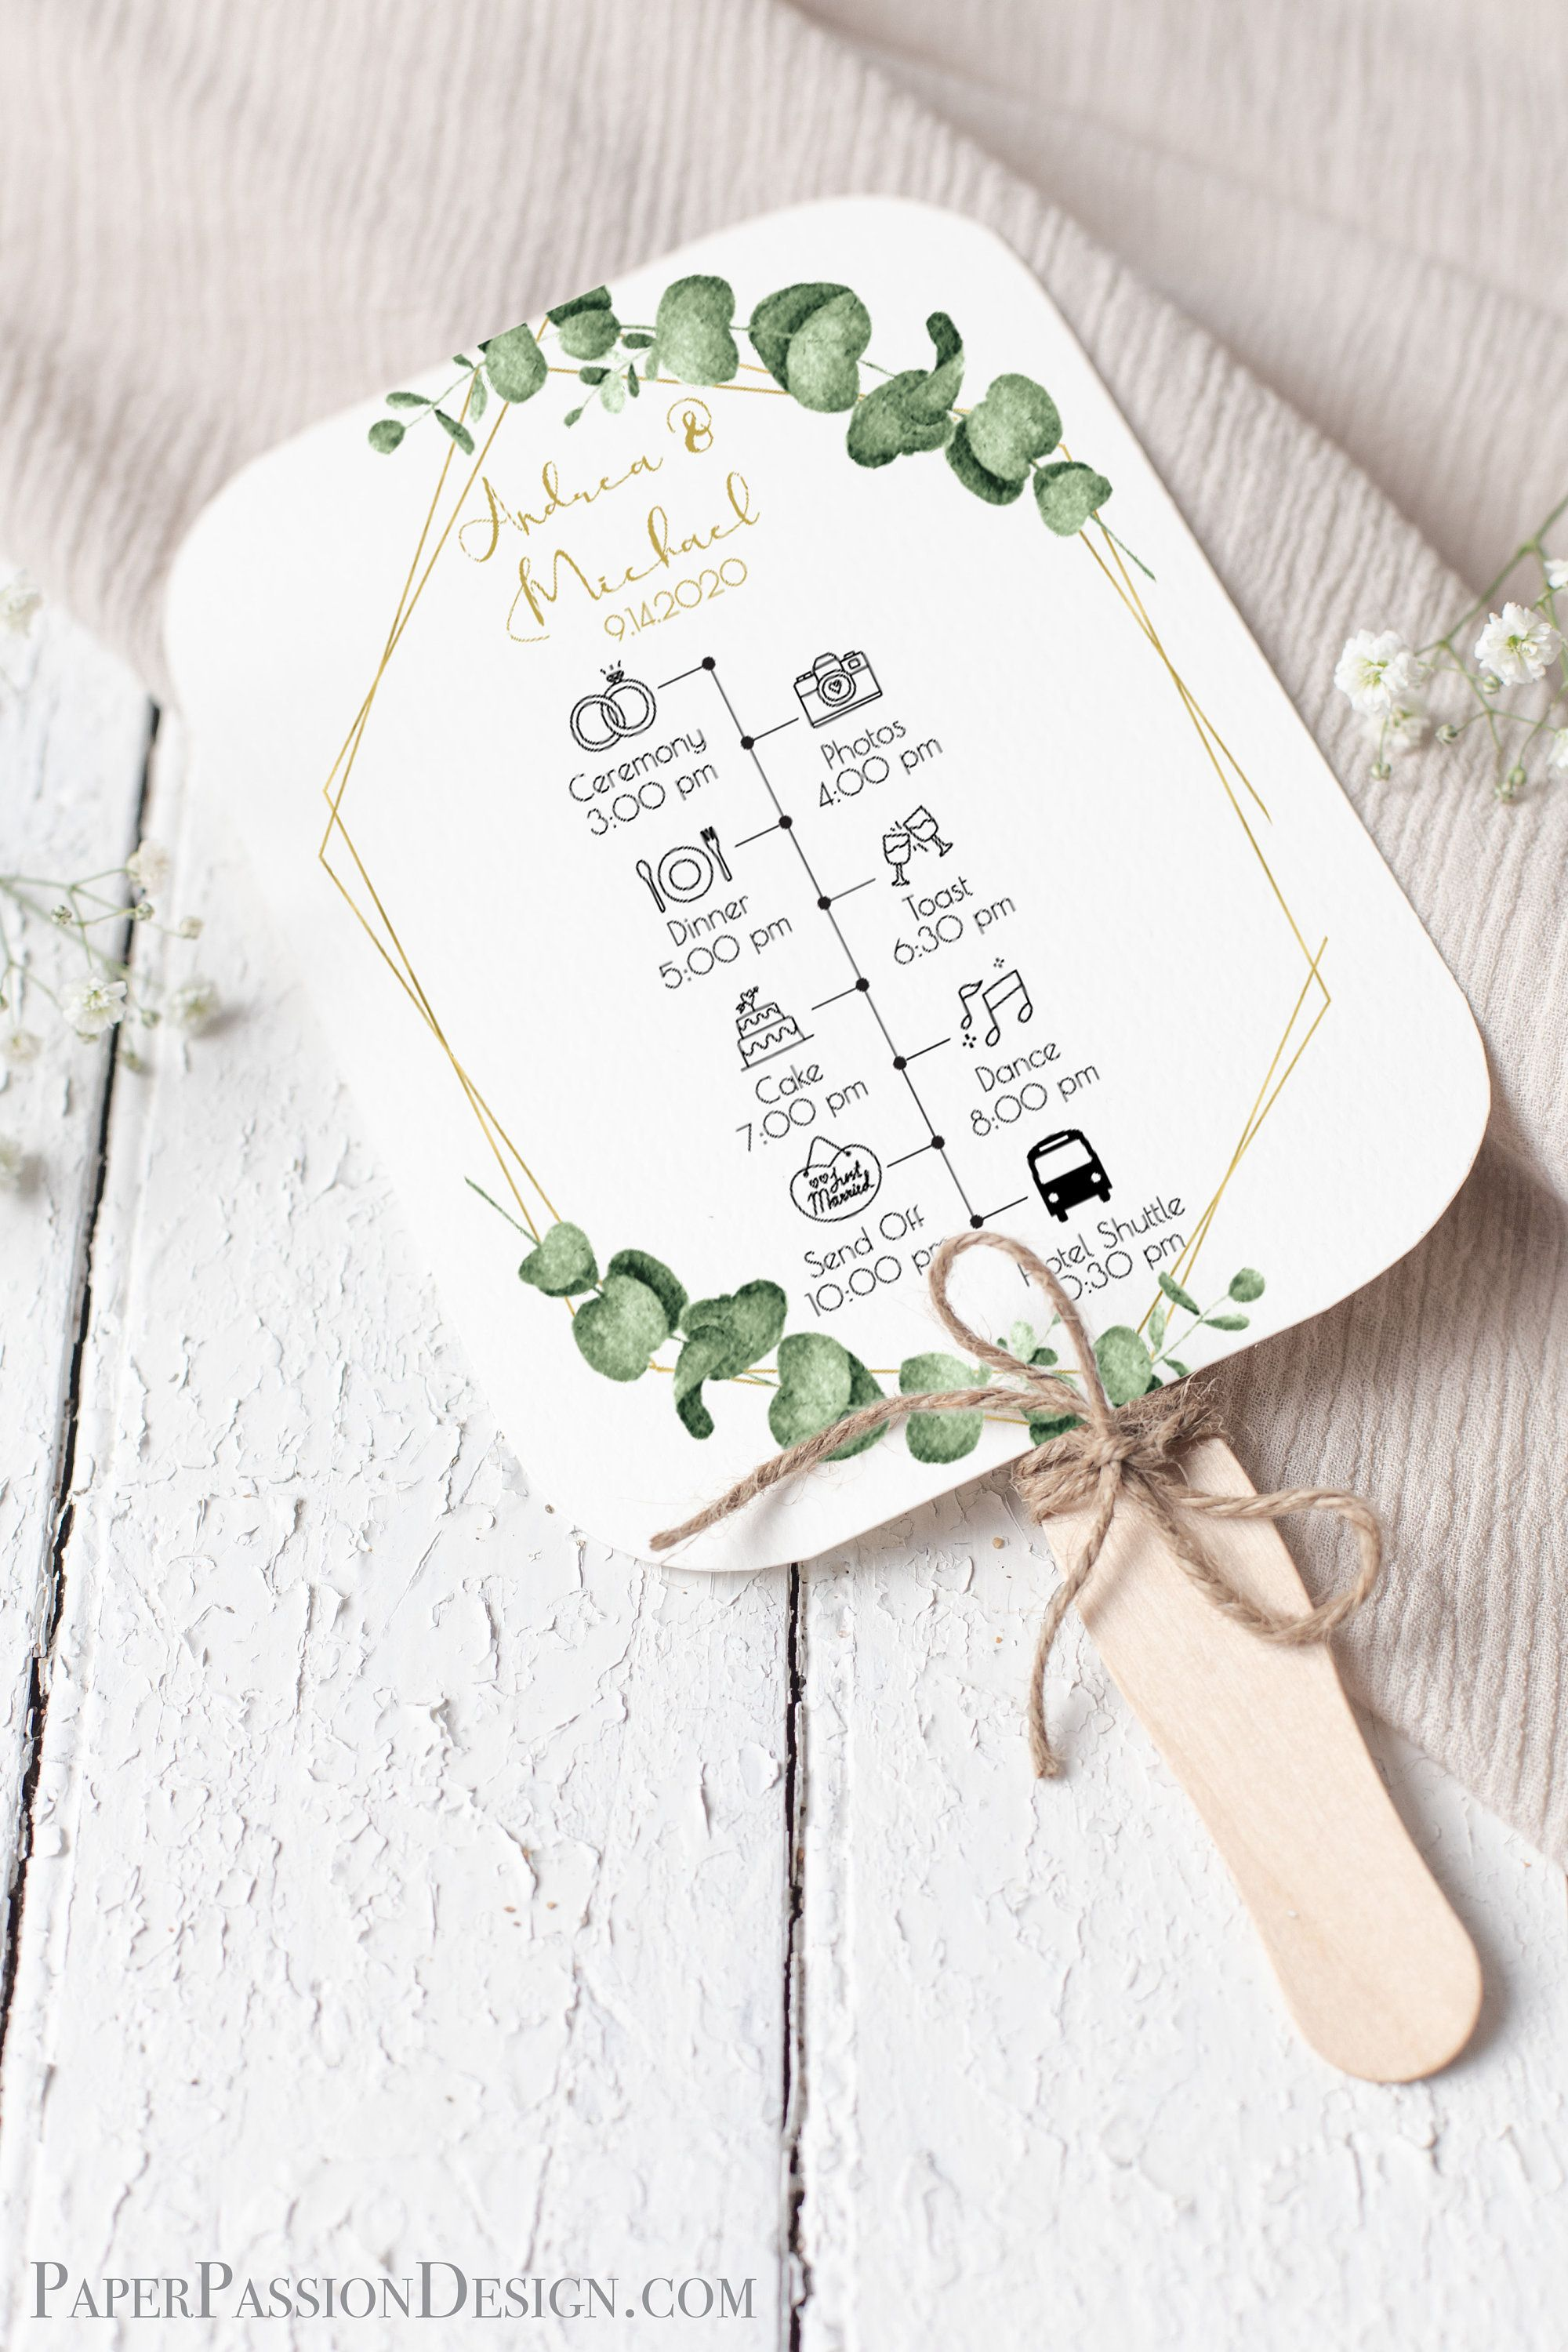 Gold Frame Greenery Fan Program Timeline Wedding Order Of Events Ceremony Program 100 Editable Templett Ppw0445 I 2020 Med Billeder Bryllupsinvitationer Bryllup Dance